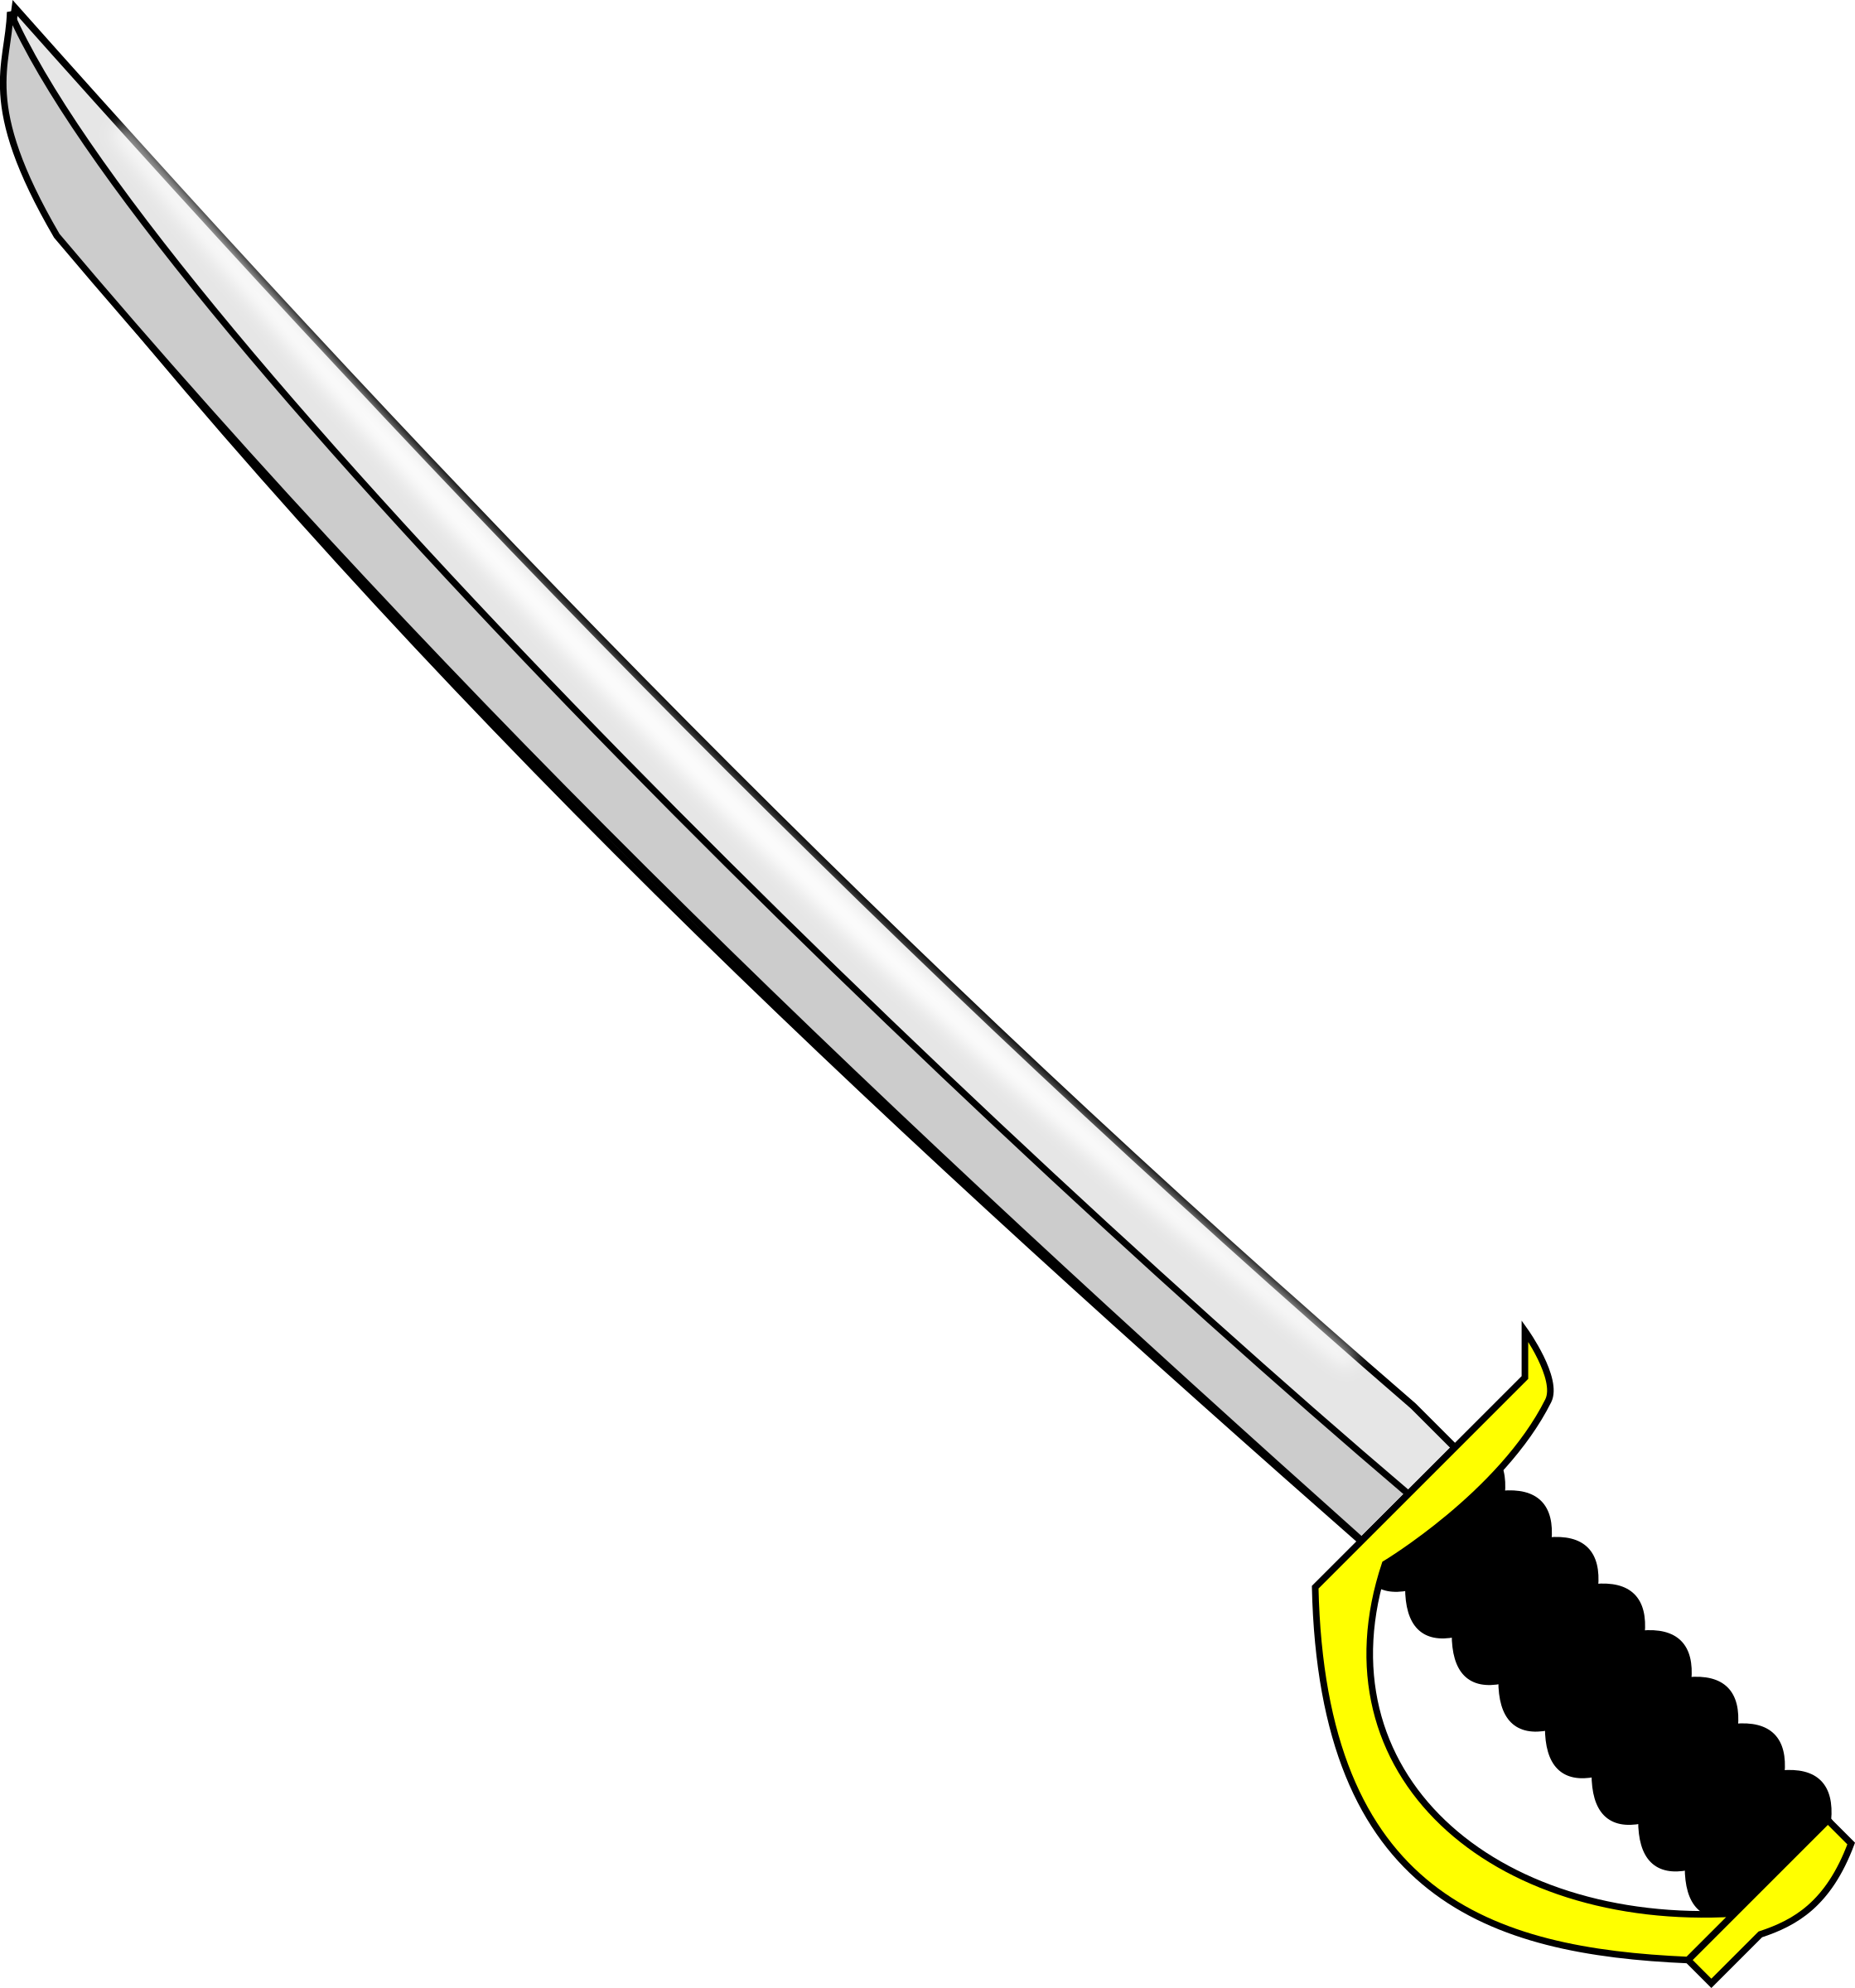 clip freeuse library Saber clipart. Big image png